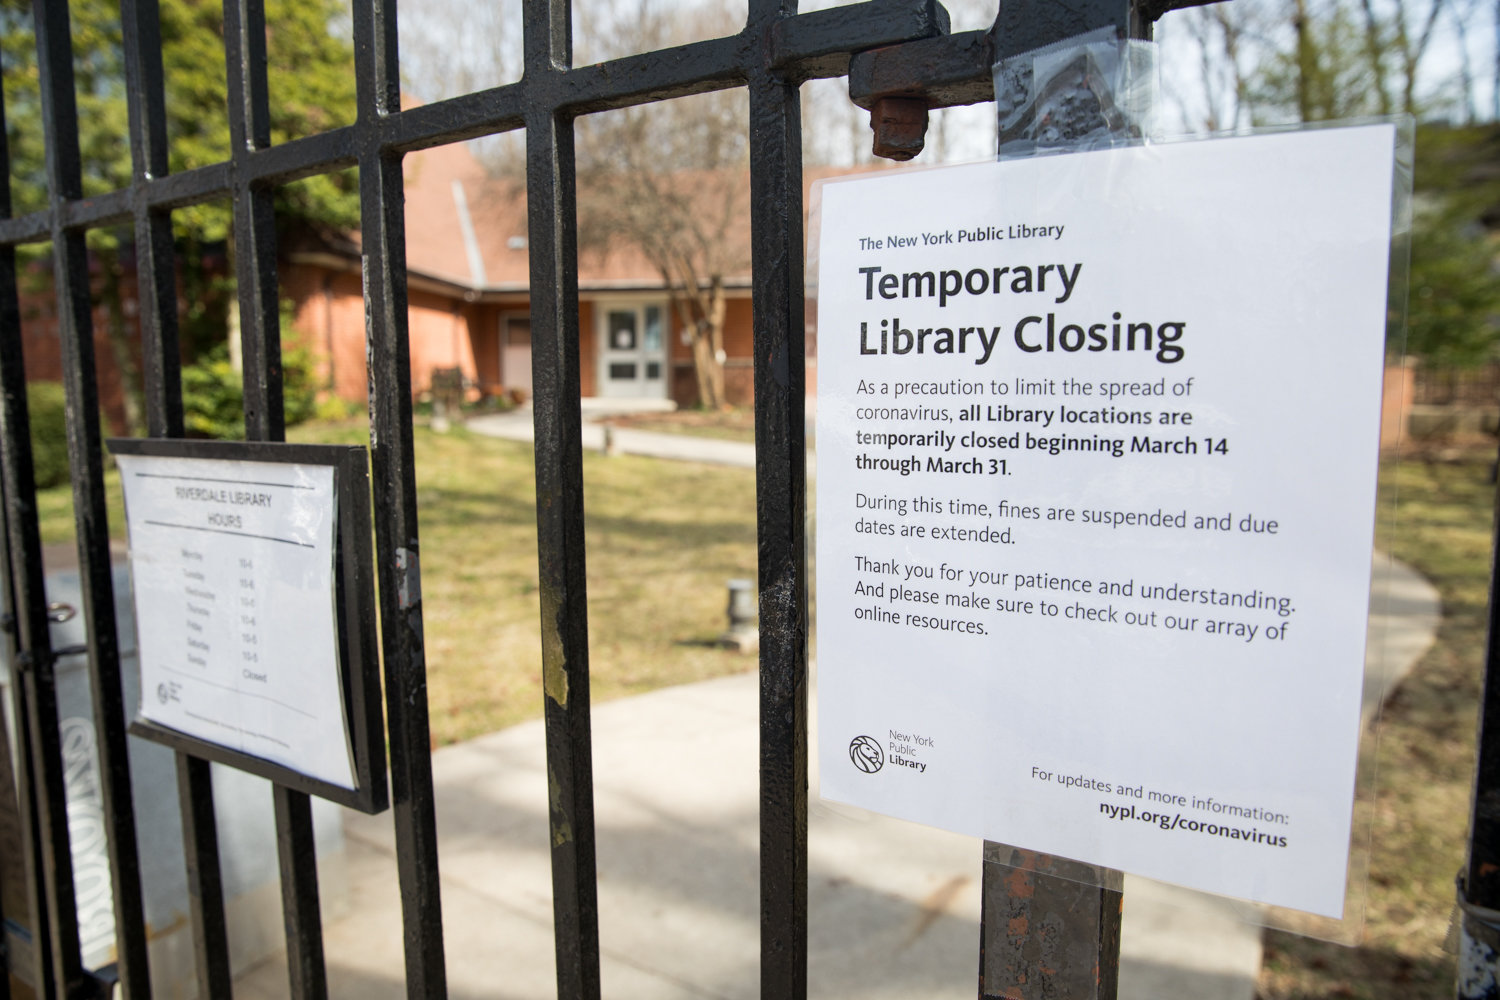 A sign announces the temporary closure of the Riverdale Library in response to the coronavirus outbreak. The library is scheduled to reopen March 31.